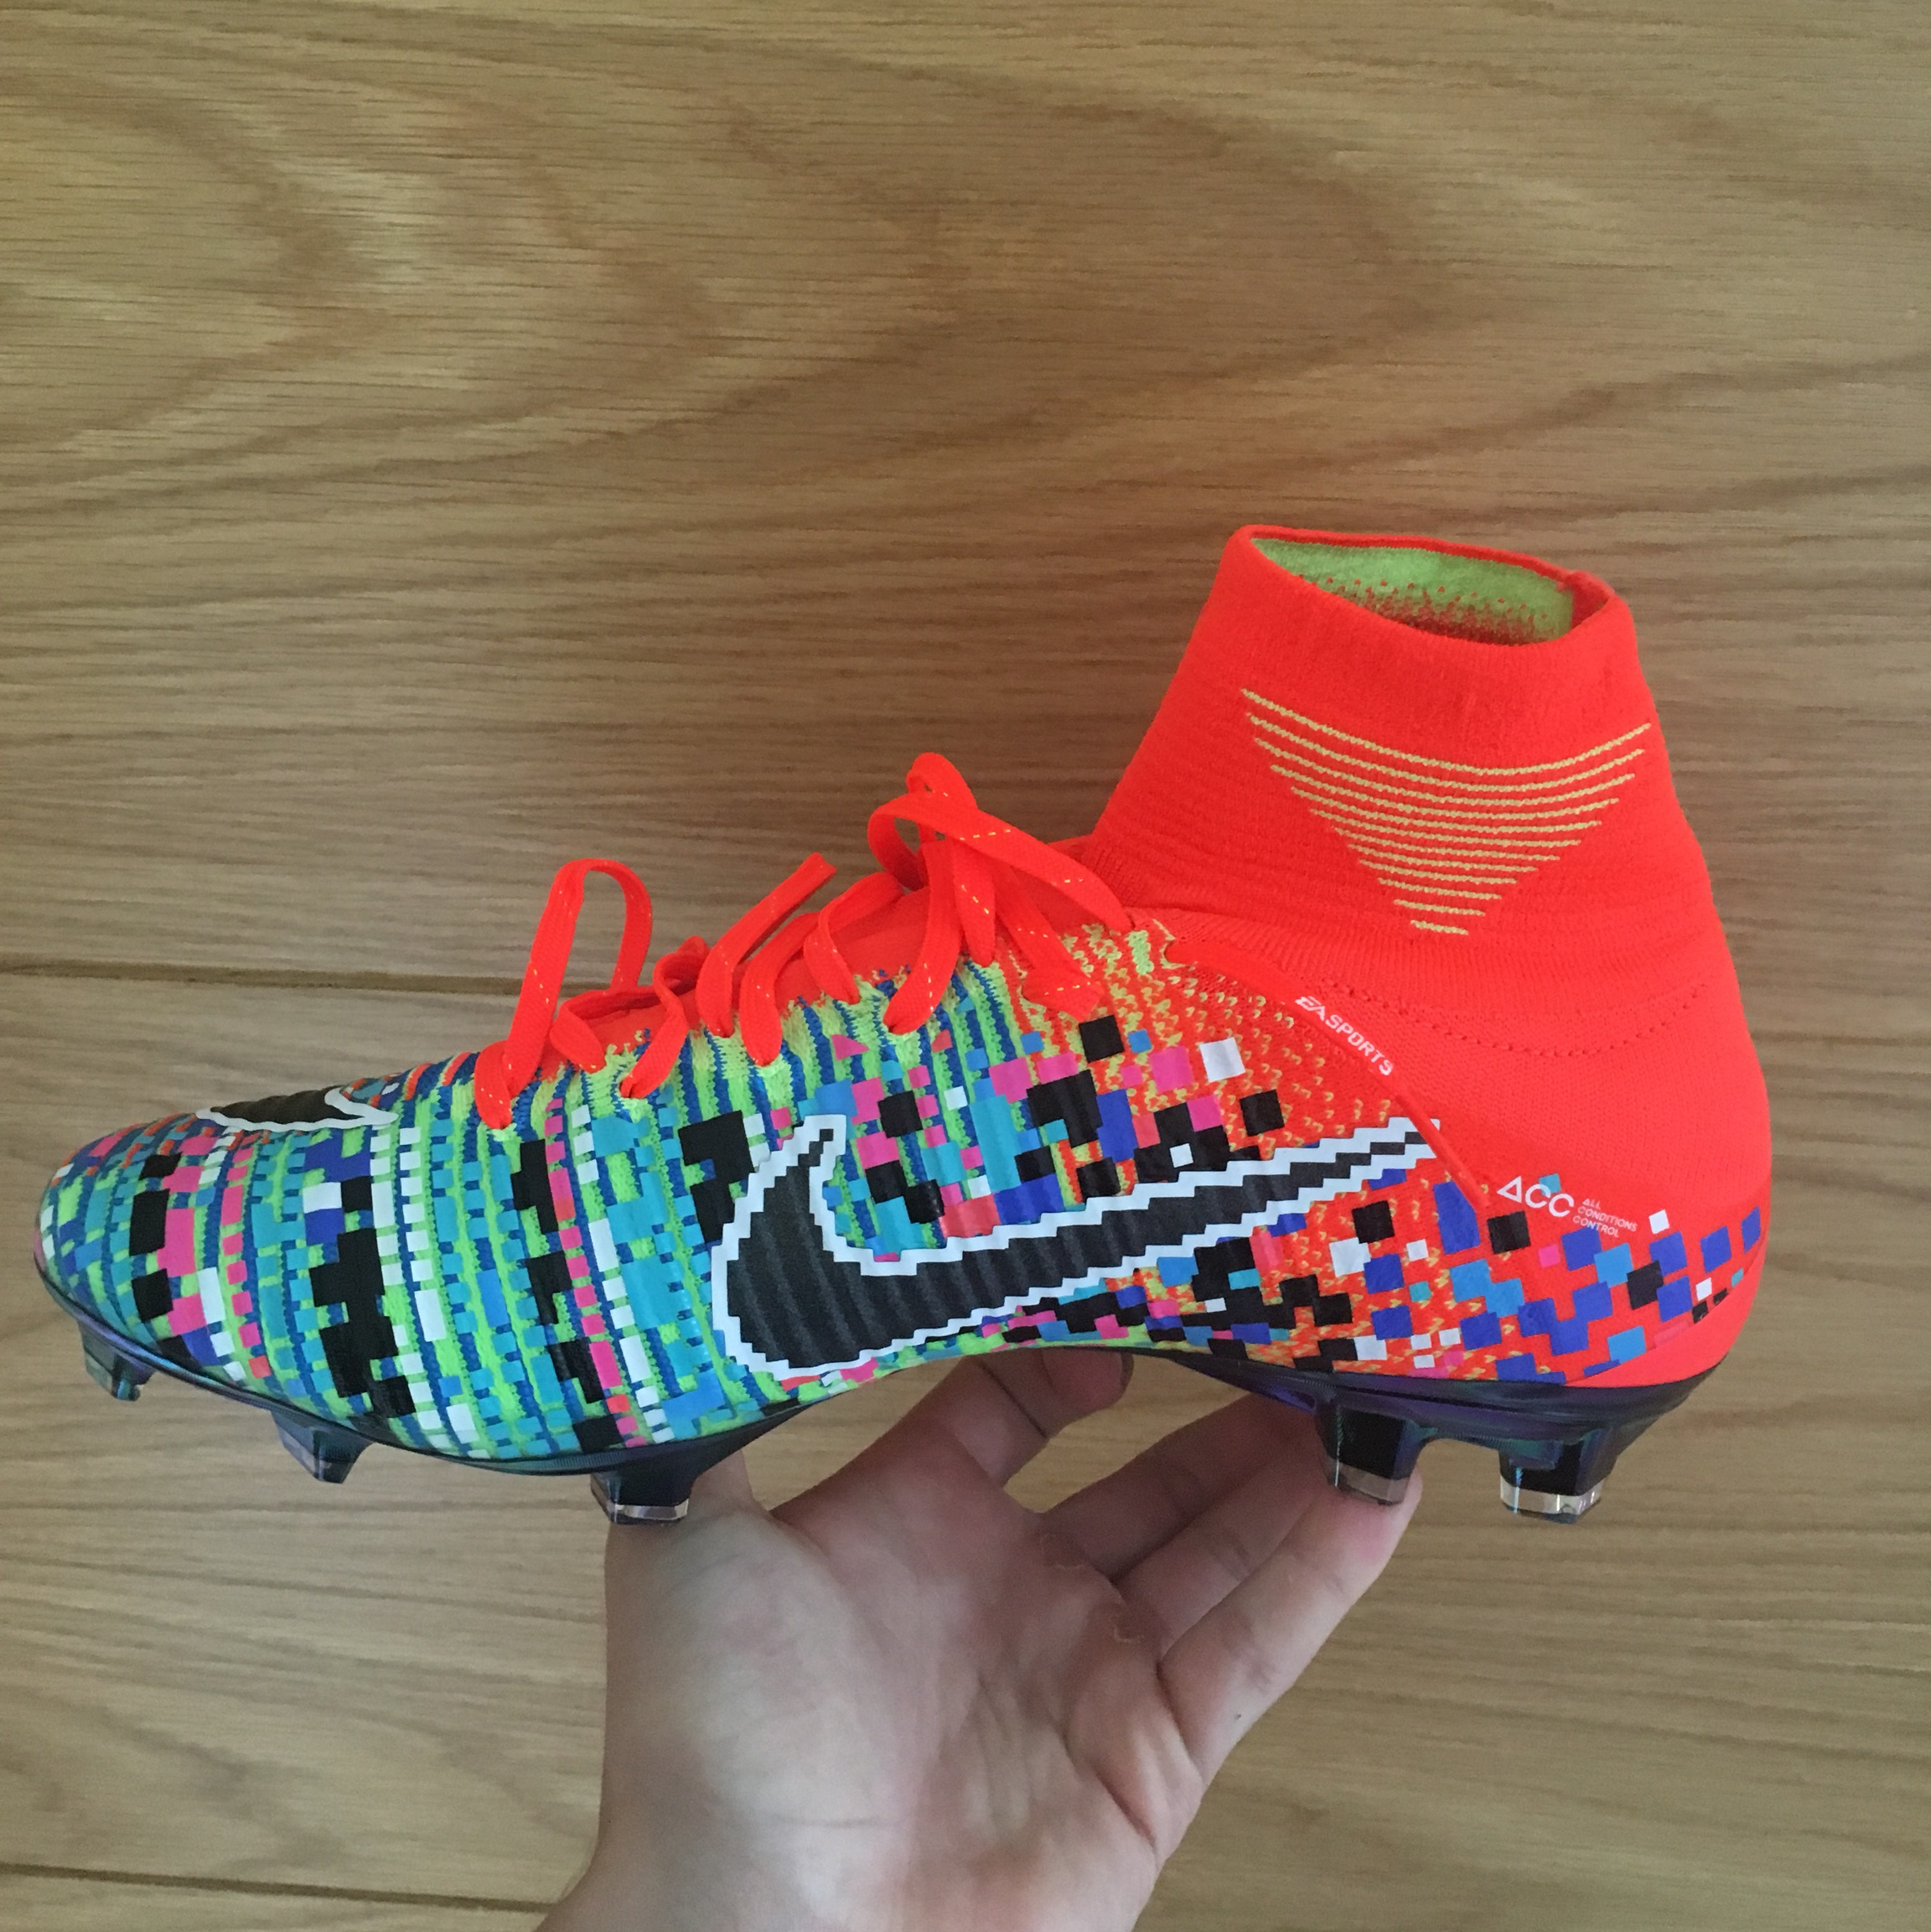 promo code 8cfb9 c0a99 Nike Mercurial Superfly X EA Sports SE FG Football... - Depop